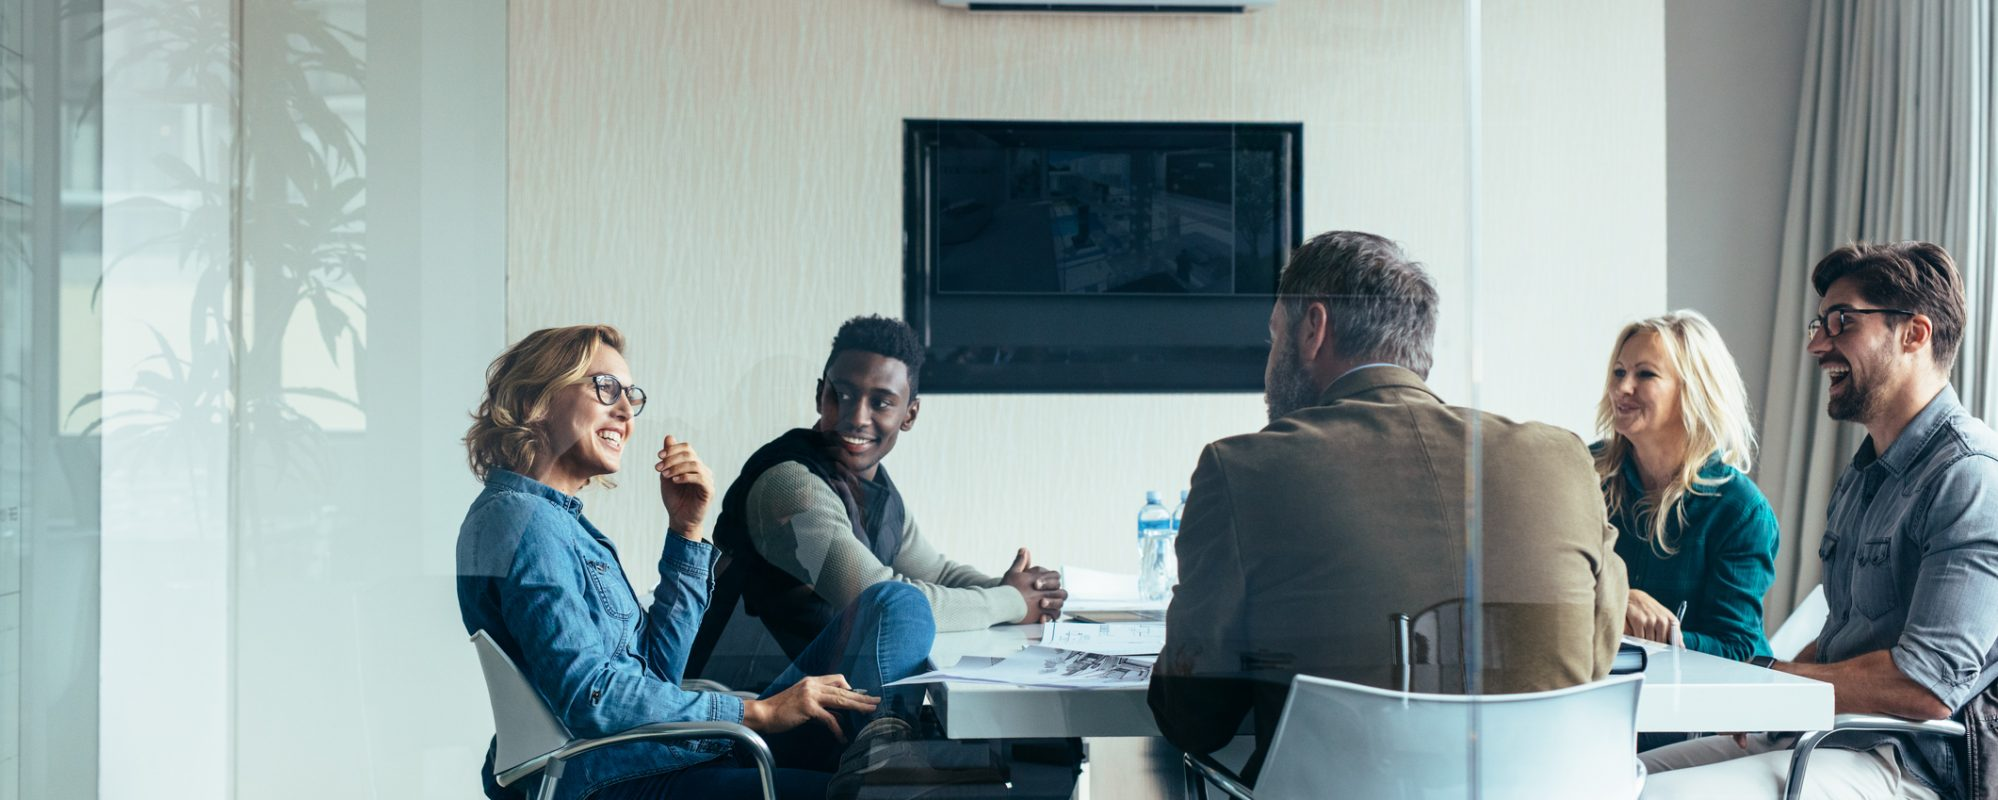 Image of business shareholders meeting in conference room and discussing the new partnership audit rules